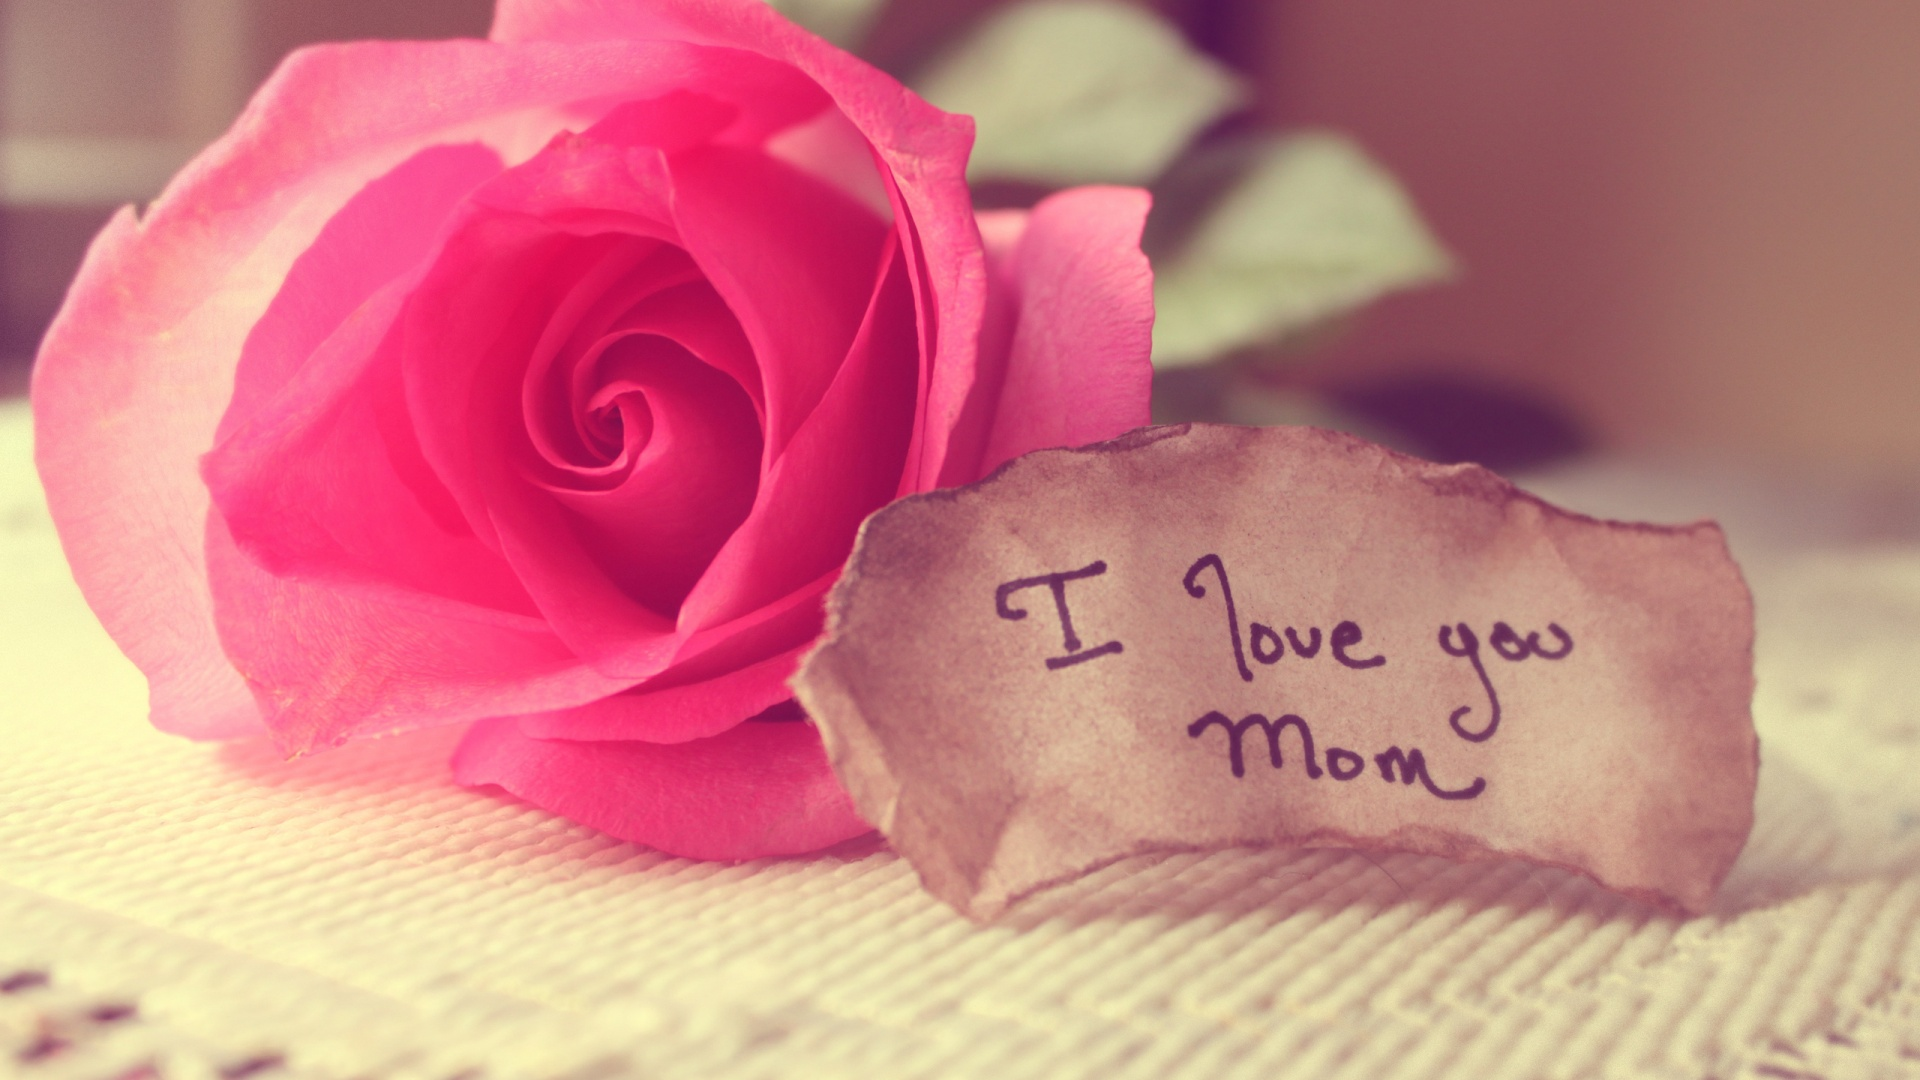 I love You Mom Wallpapers - 1920x1080 - 431327